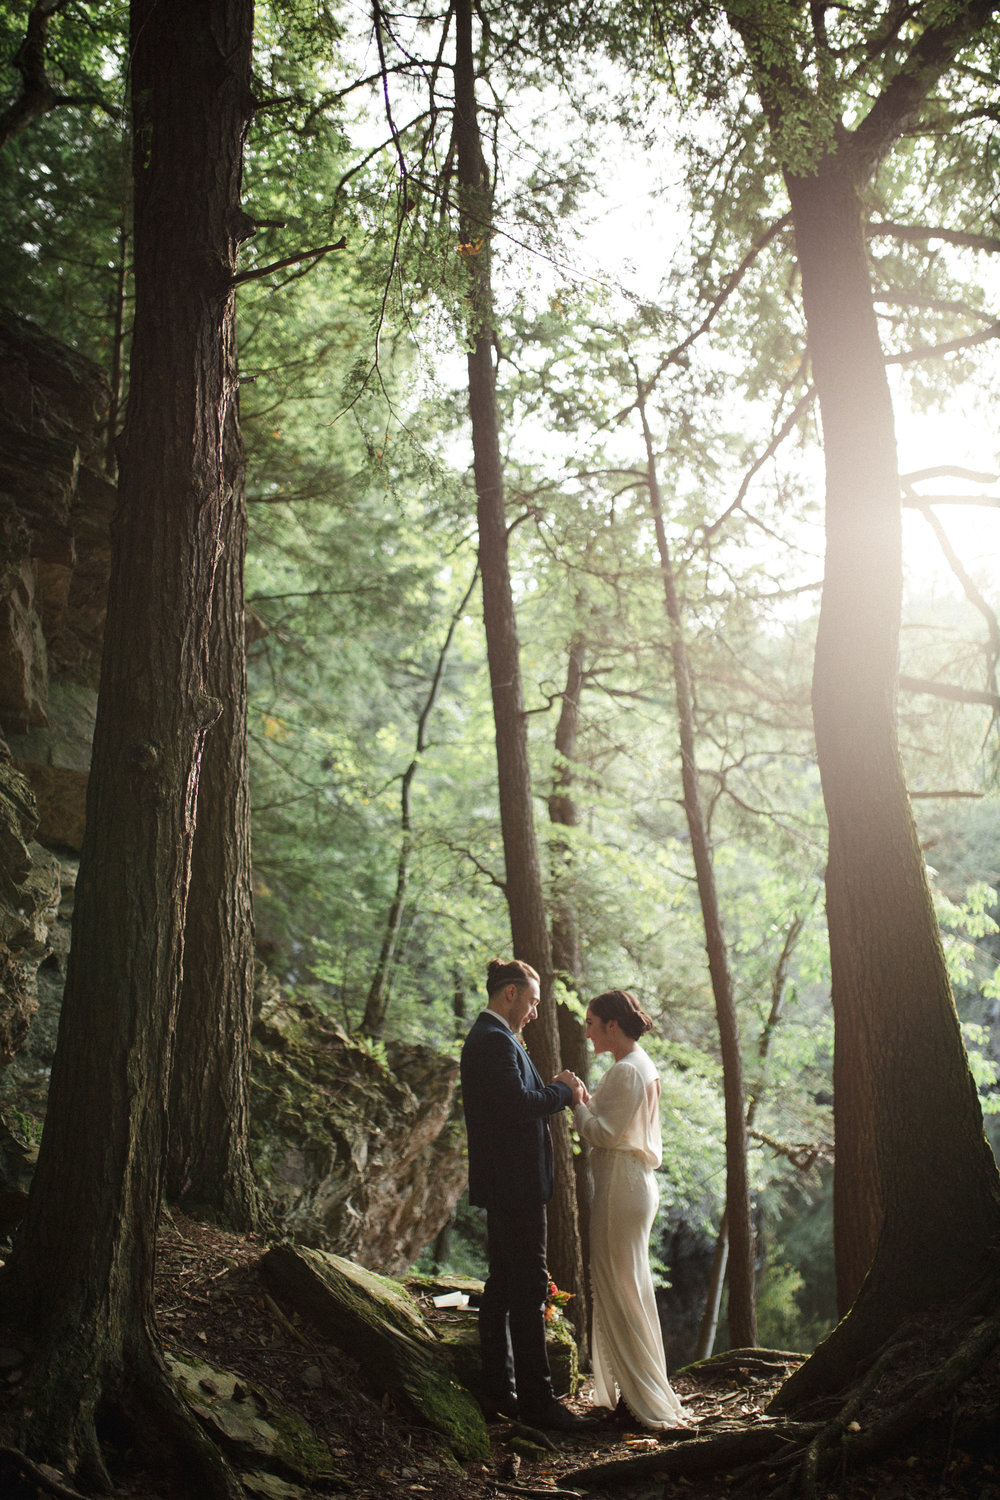 Massachusetts Woods Elopement_meg haley photographs_013.jpg